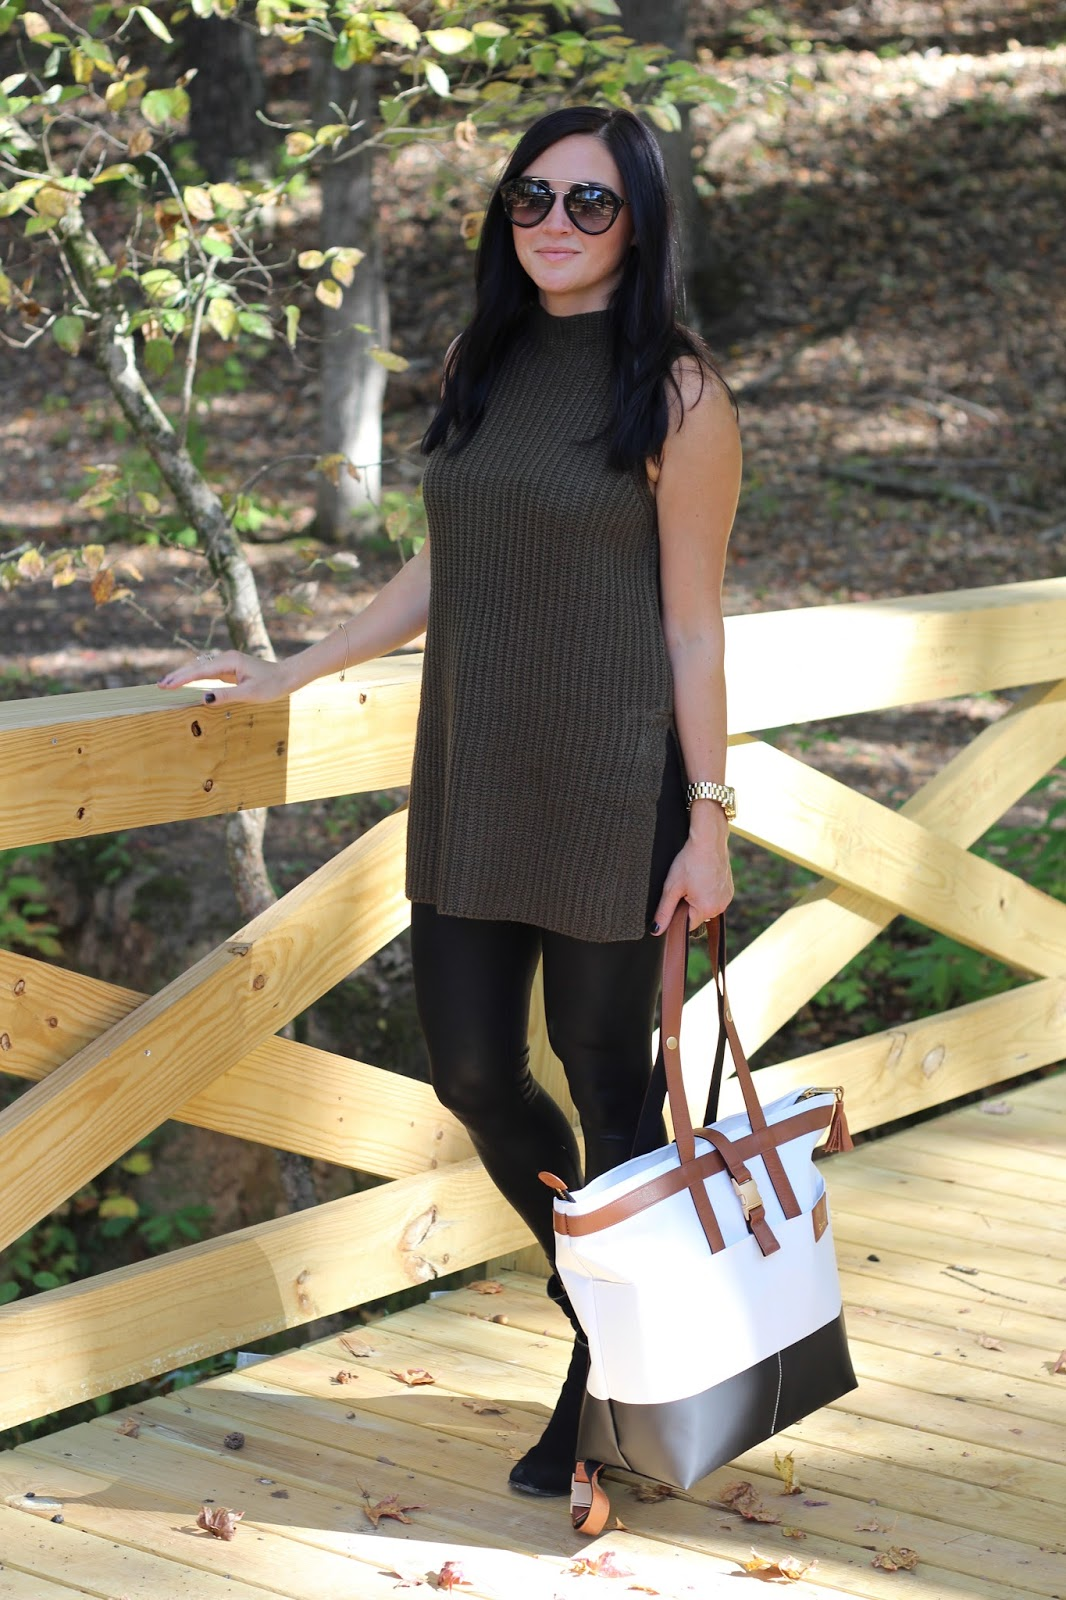 Sleeveless sweater tunic, leather leggings